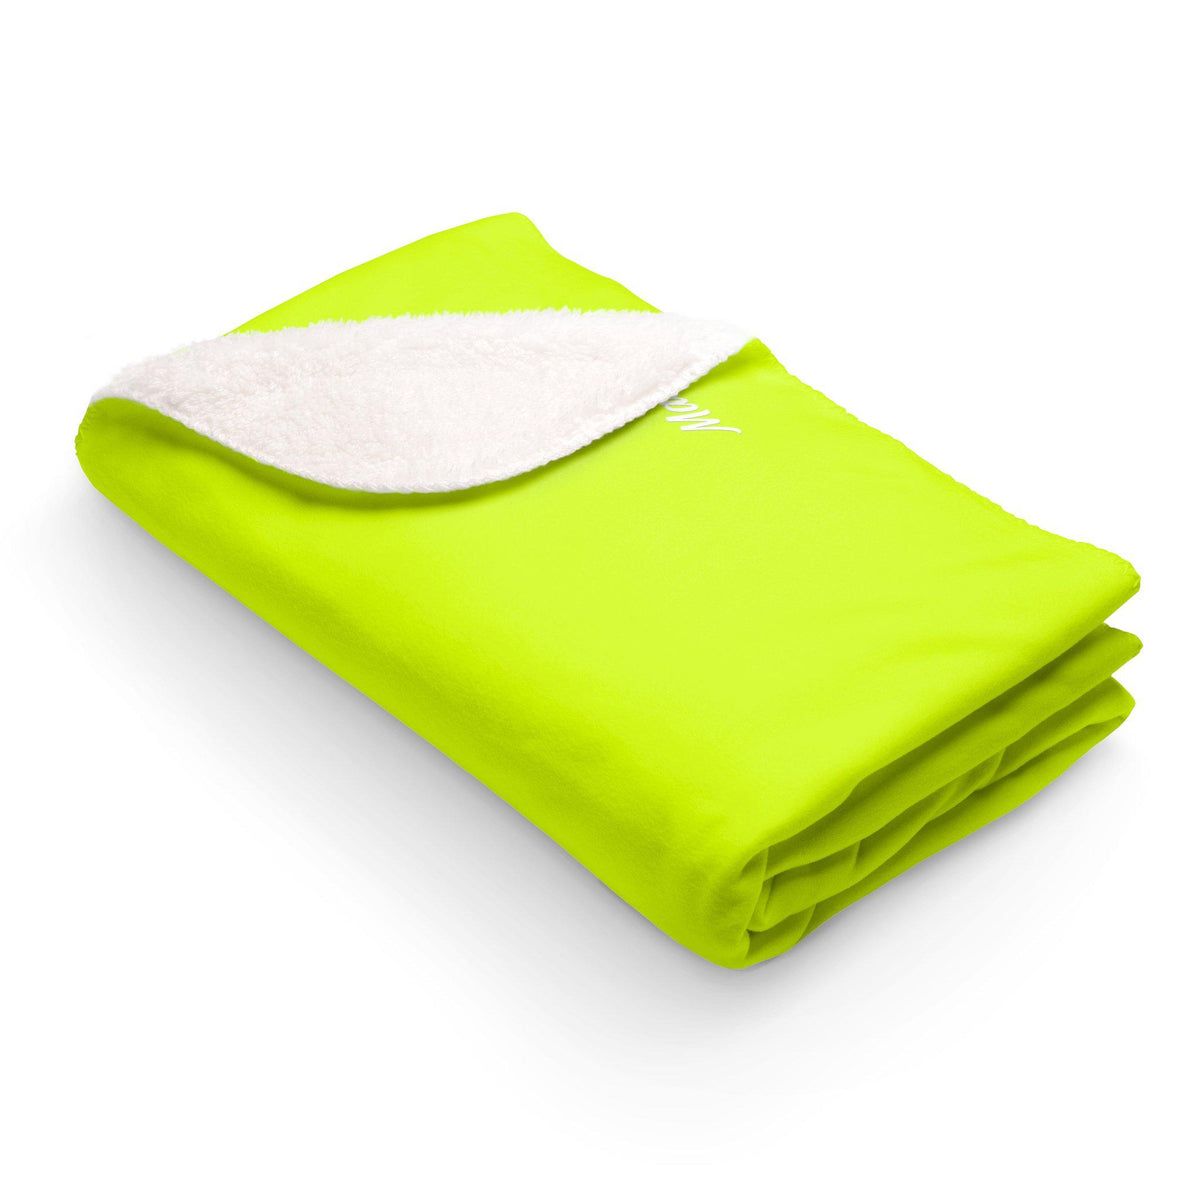 Maison d'Elite Sherpa Fleece Blanket-Home - Throws & Blankets-Maison d'Elite-50x60-YellowGreen-Fleece-Très Elite